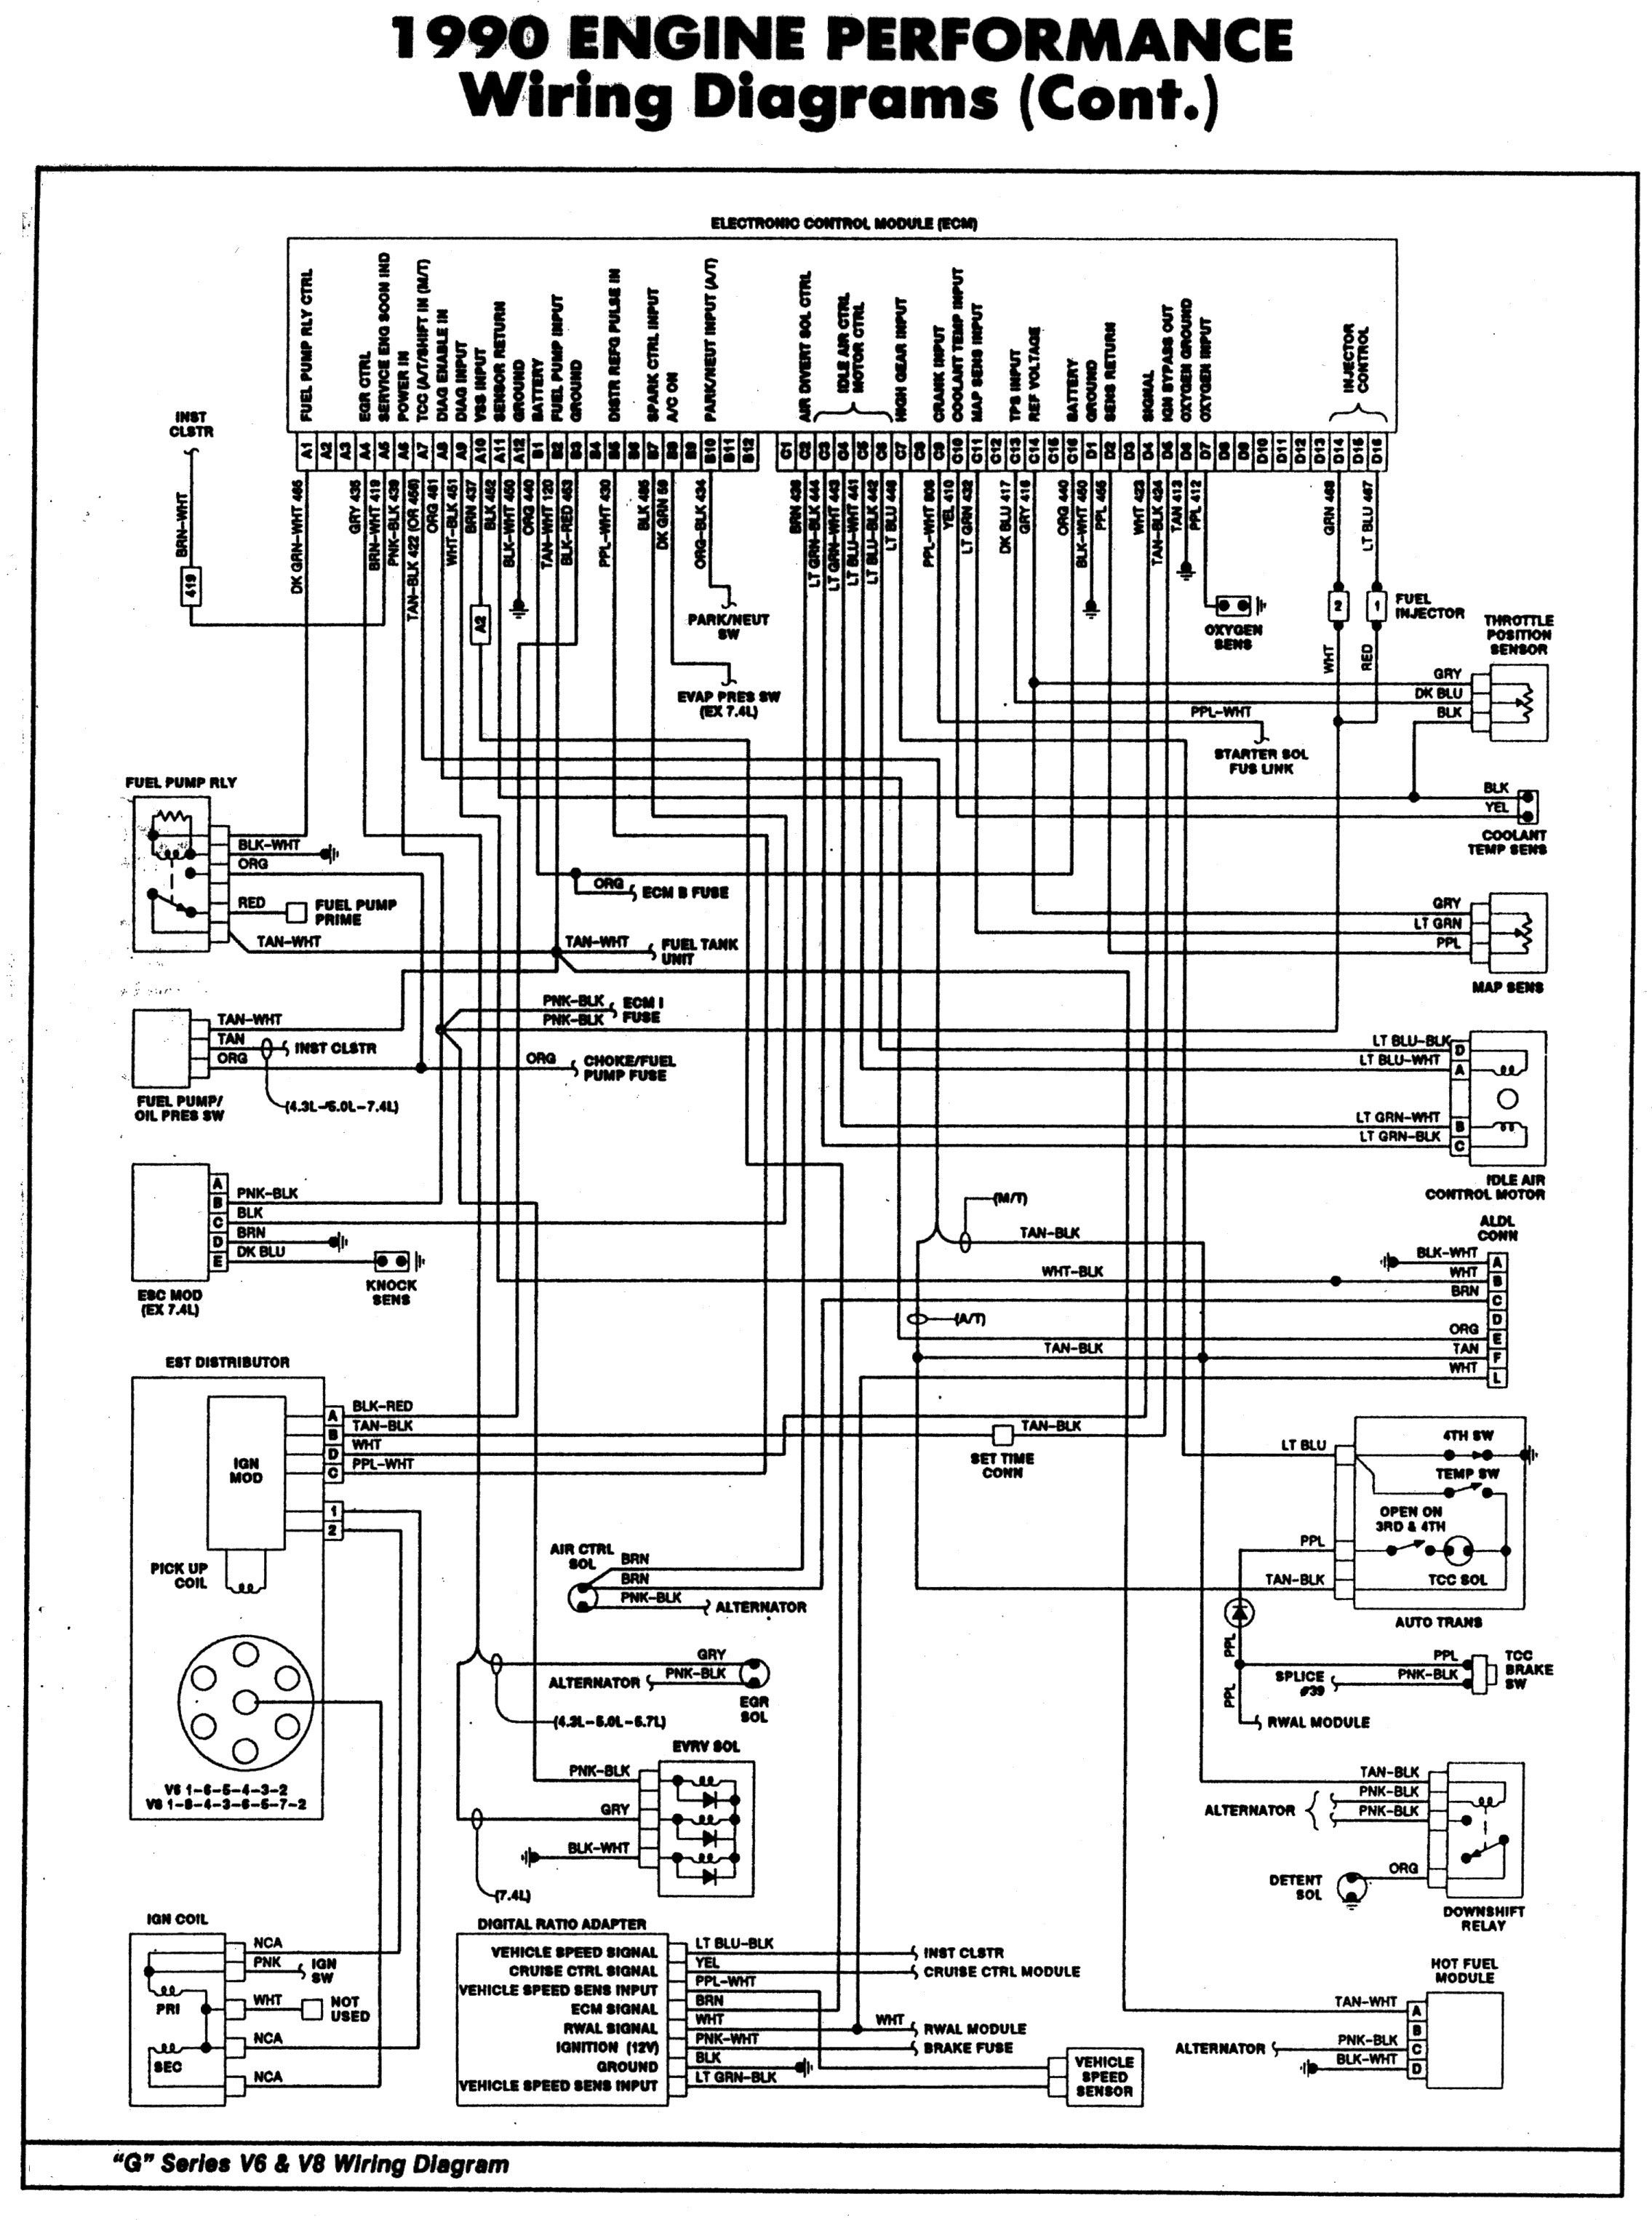 1989 Gmc Wiring Harness - My Wiring Diagram  Gmc Wiring Diagram Schematic on gmc trailer wiring, gmc truck schematics, 2005 gmc power distribution schematics, gmc truck fuse diagrams, gmc headlights, gmc engine, gmc schematic diagrams, chevrolet truck schematics, gmc yukon fuel pump diagram, gmc wiring color codes, gmc drawings, 83 gmc pickup schematics, 2000 gmc jimmy fuel pump schematics, gmc truck wiring harness,